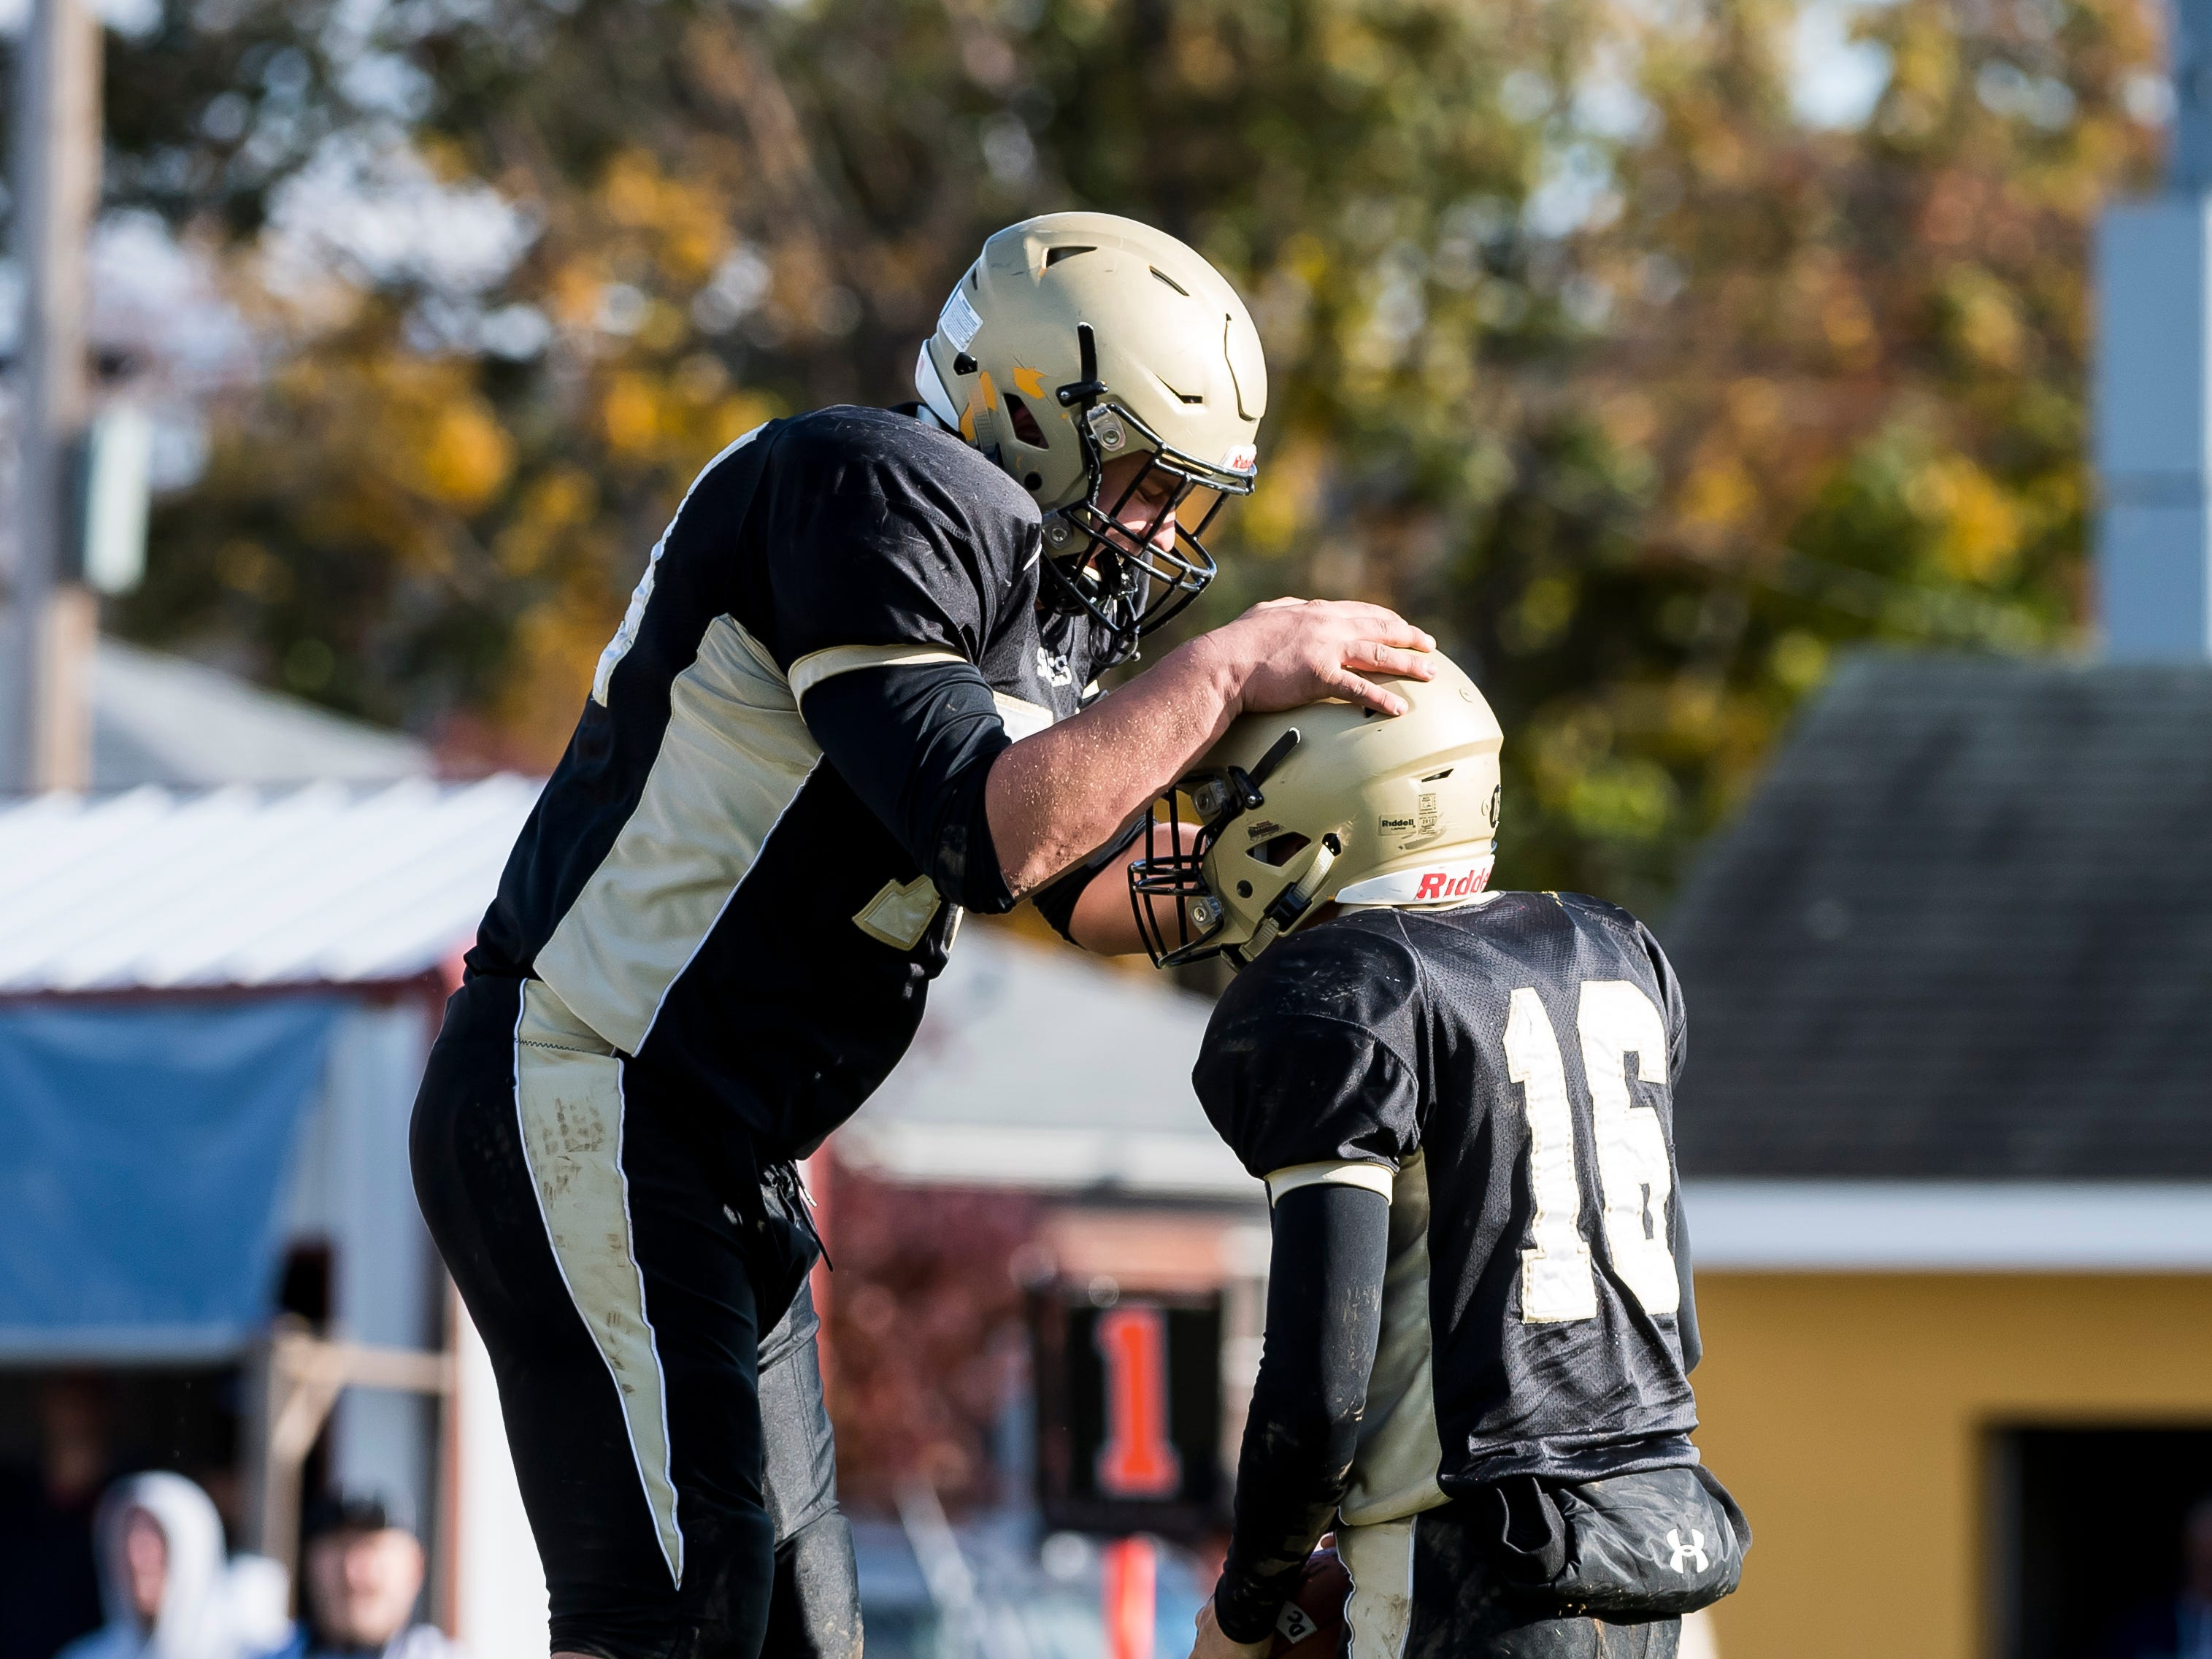 Delone Catholic's Zachary Groft celebrates with Evan Brady (16) after Brady scored a rushing touchdown during a District III Class 2A semifinal game against Upper Dauphin on Saturday, November 3, 2018. The Squires won 48-23.